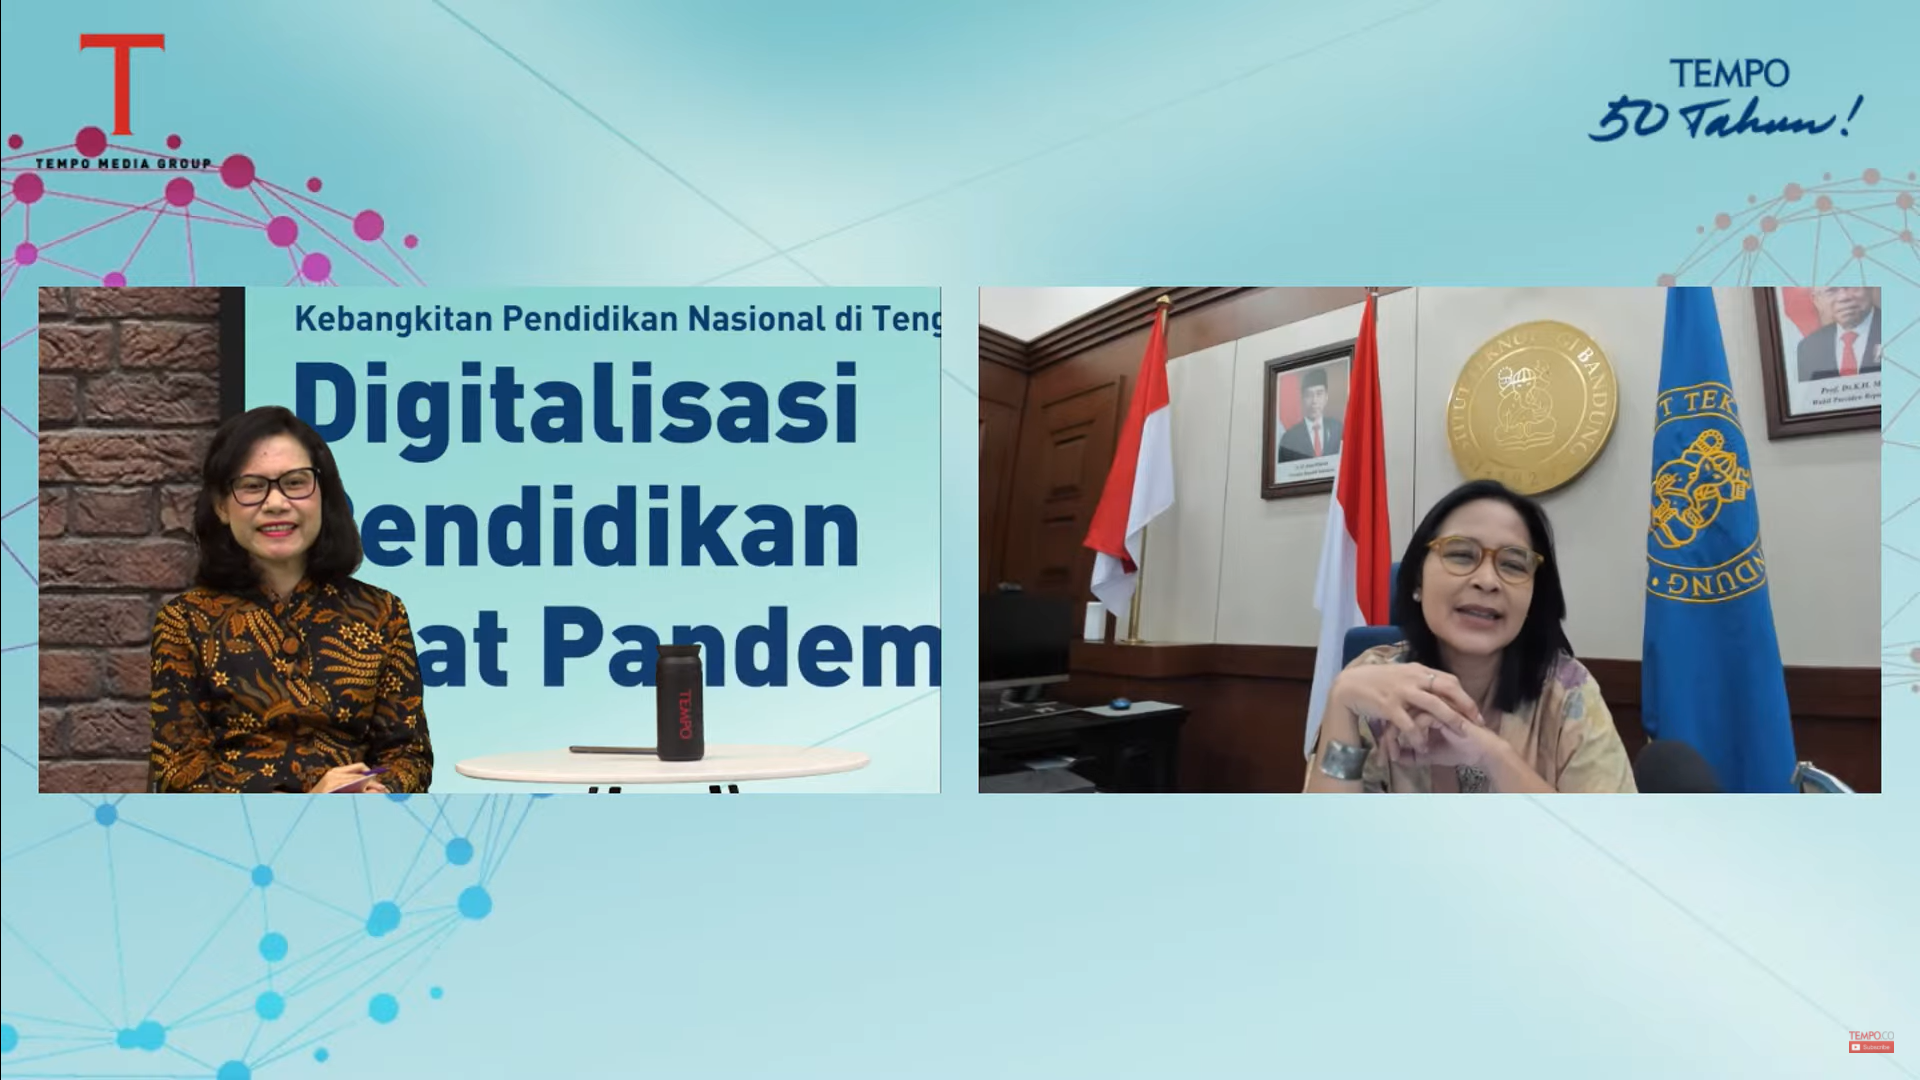 Prof. Reini: ITB to Implement Digitized Education During Covid-19 Pandemic